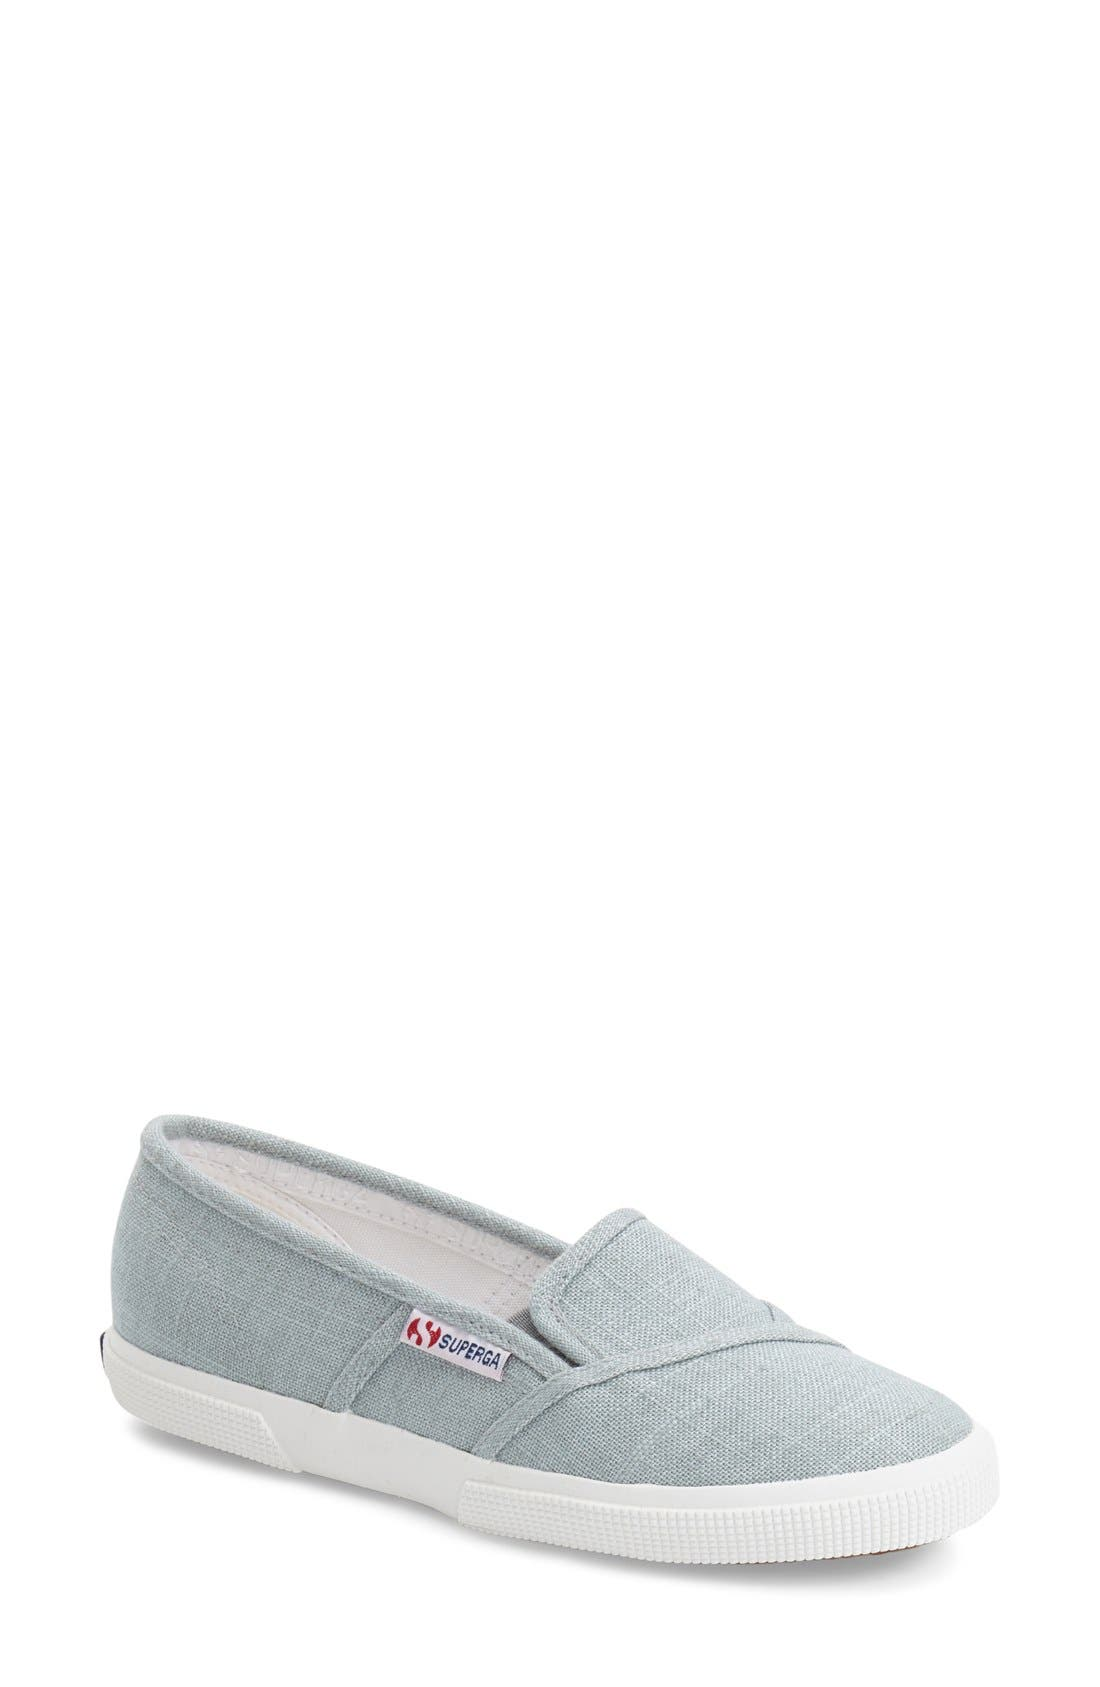 Main Image - Superga 'Linu' Slip-On Sneaker (Women)